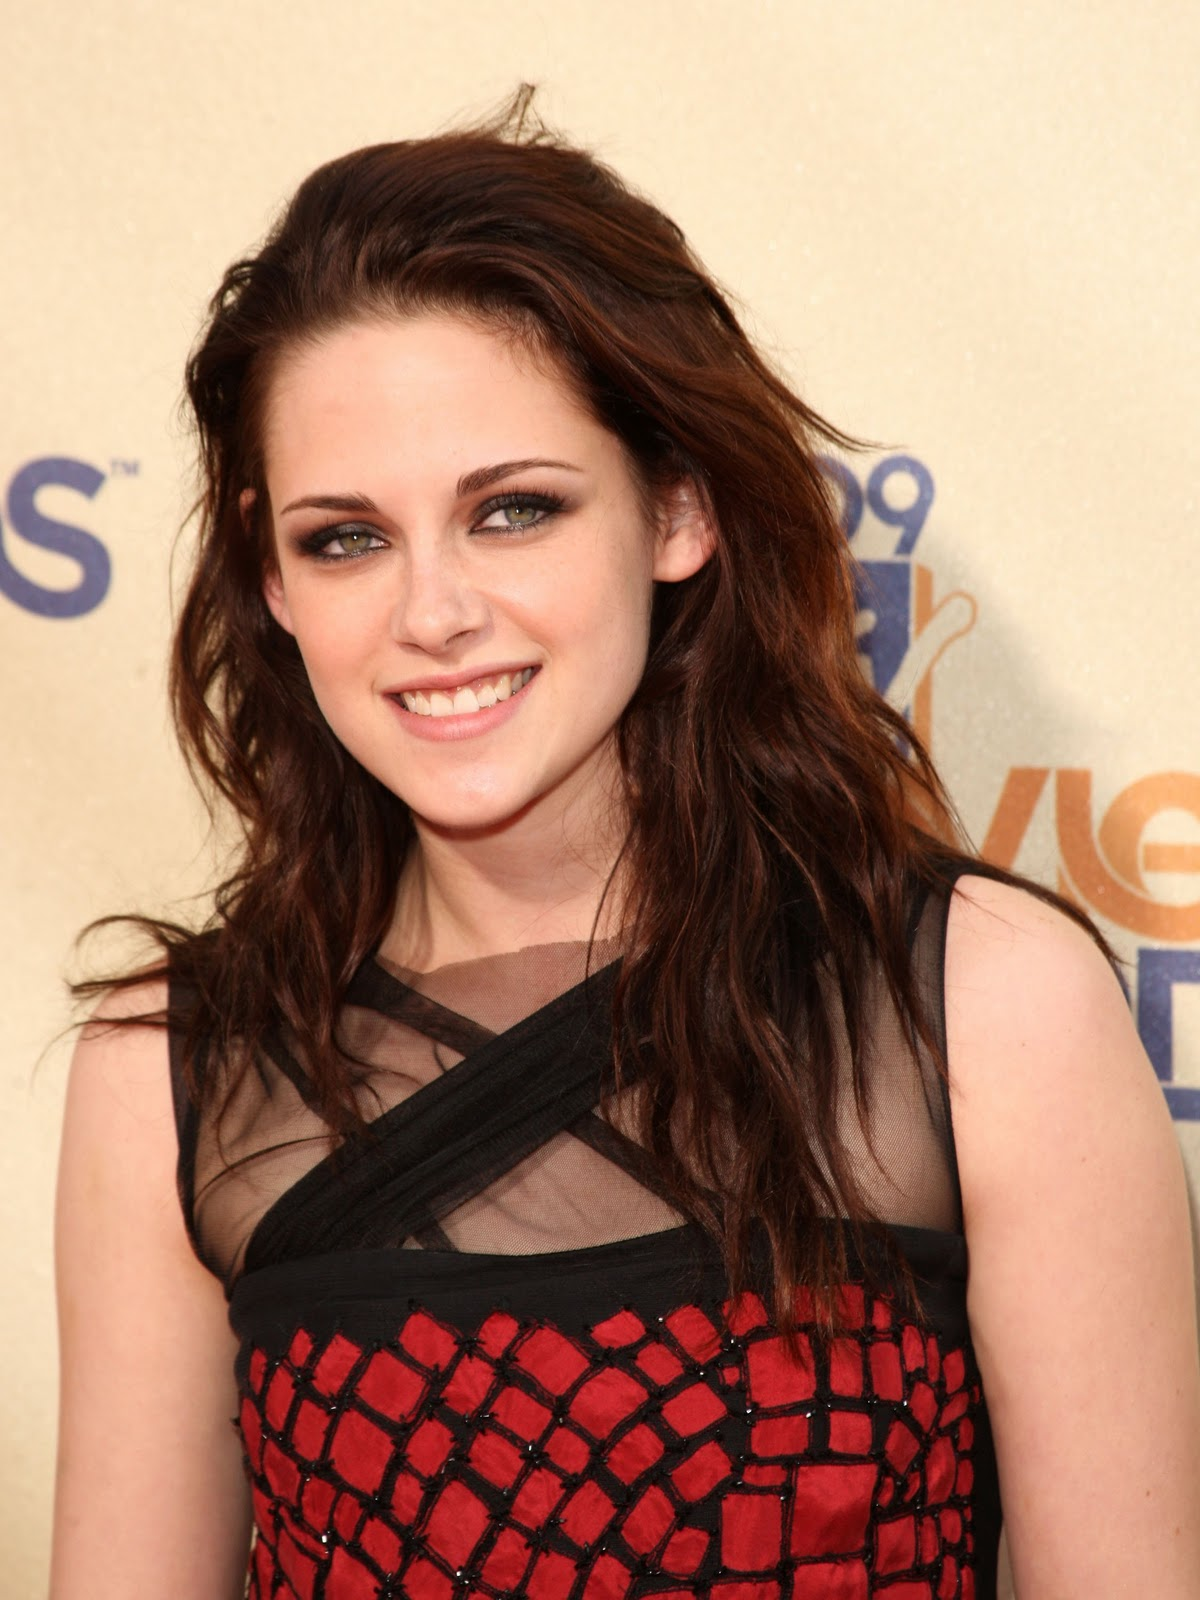 http://3.bp.blogspot.com/_GIbBrp39bLA/TMX6qs66BfI/AAAAAAAAAFg/eCx67W8-DmI/s1600/21718_celebutopia-kristen_stewart_arrives_at_the_2009_mtv_movie_awards-09_122_623lo.jpg